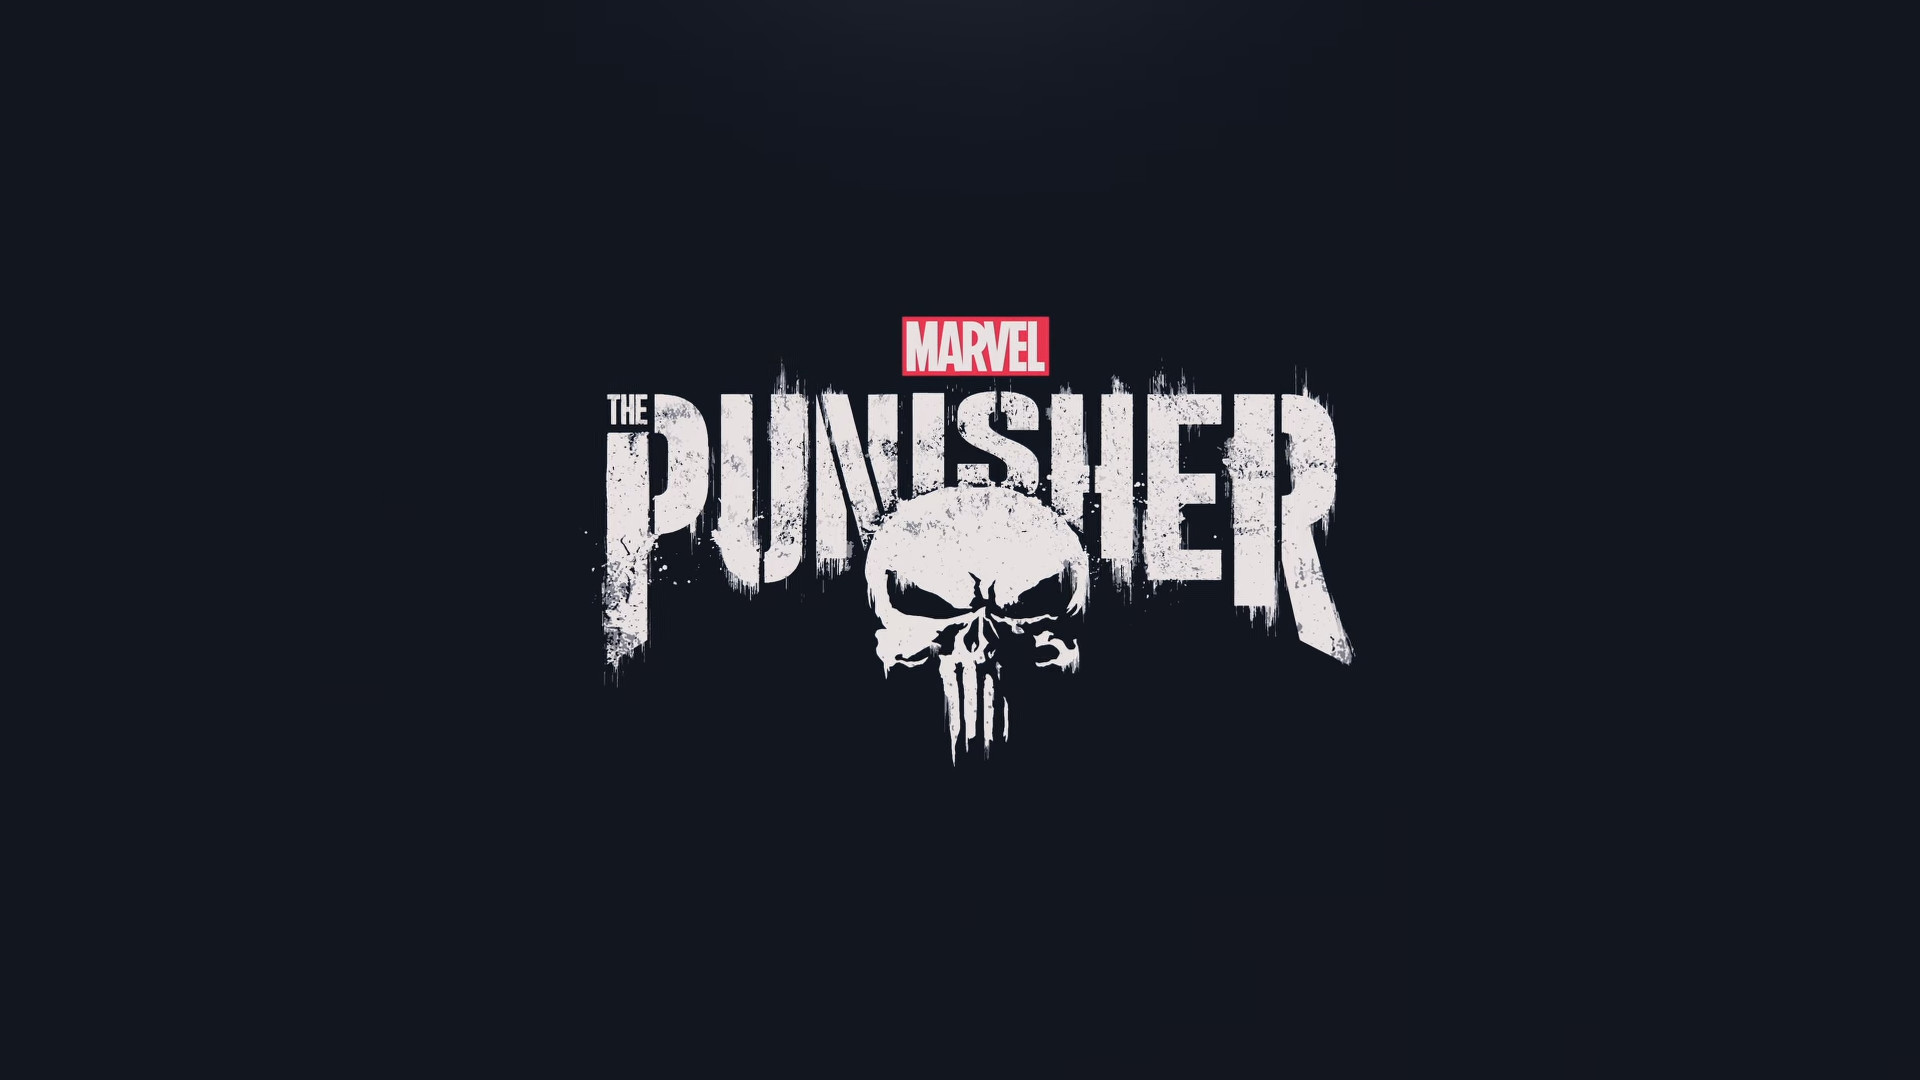 1920x1080 Fernsehserien - The Punisher Wallpaper